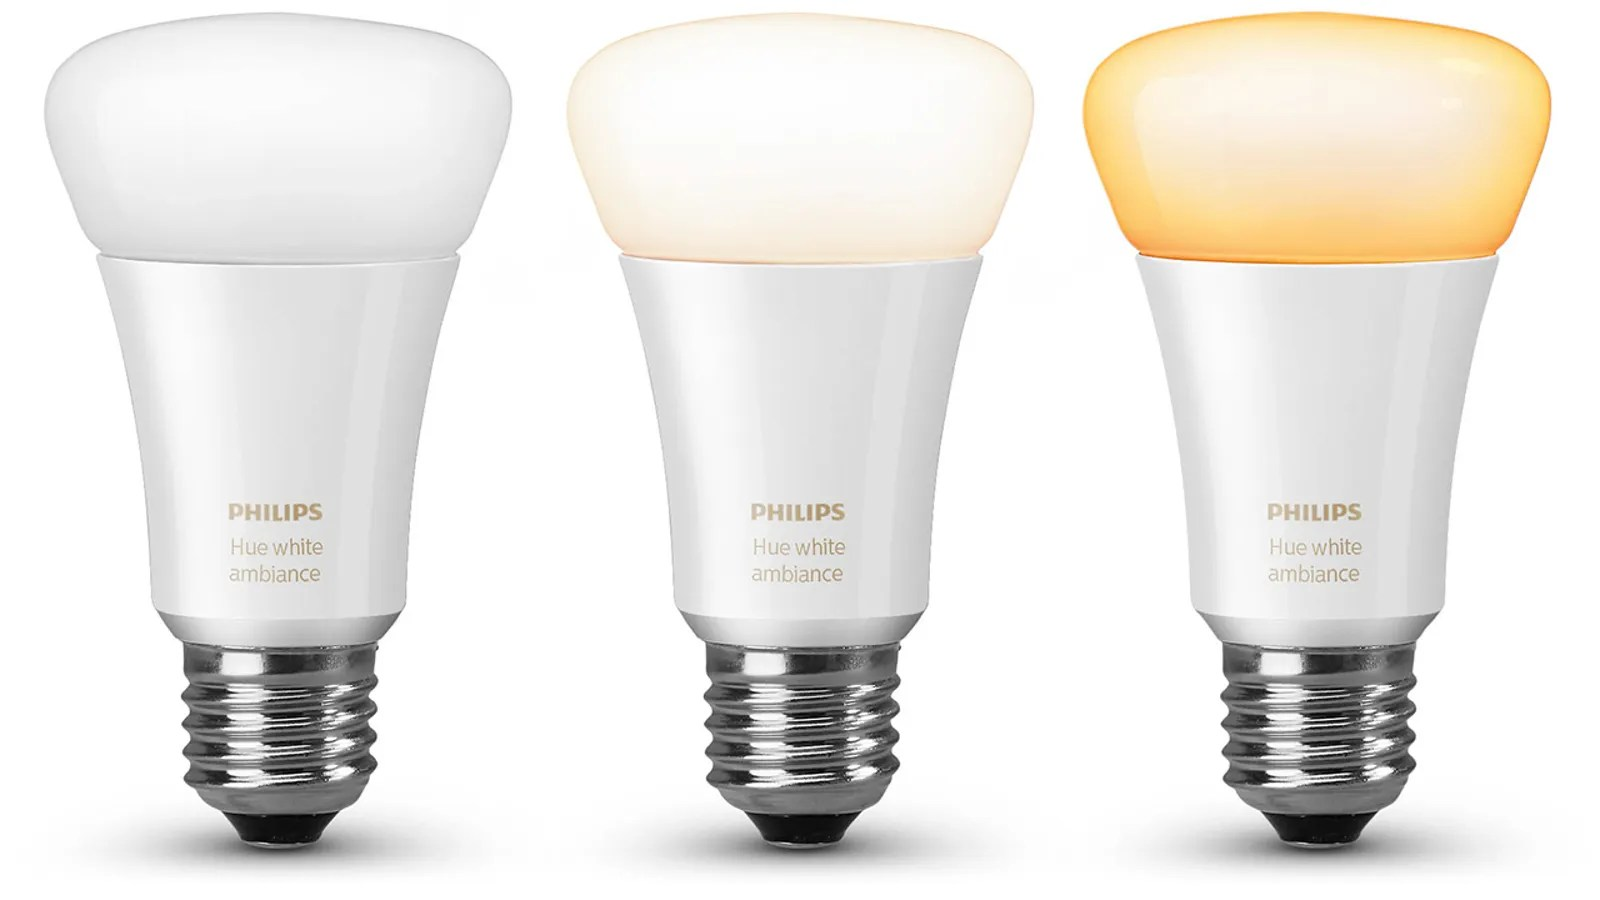 Bulb Philips You Can Tweak The Warmth Of Philips New White Hue Bulbs To Help